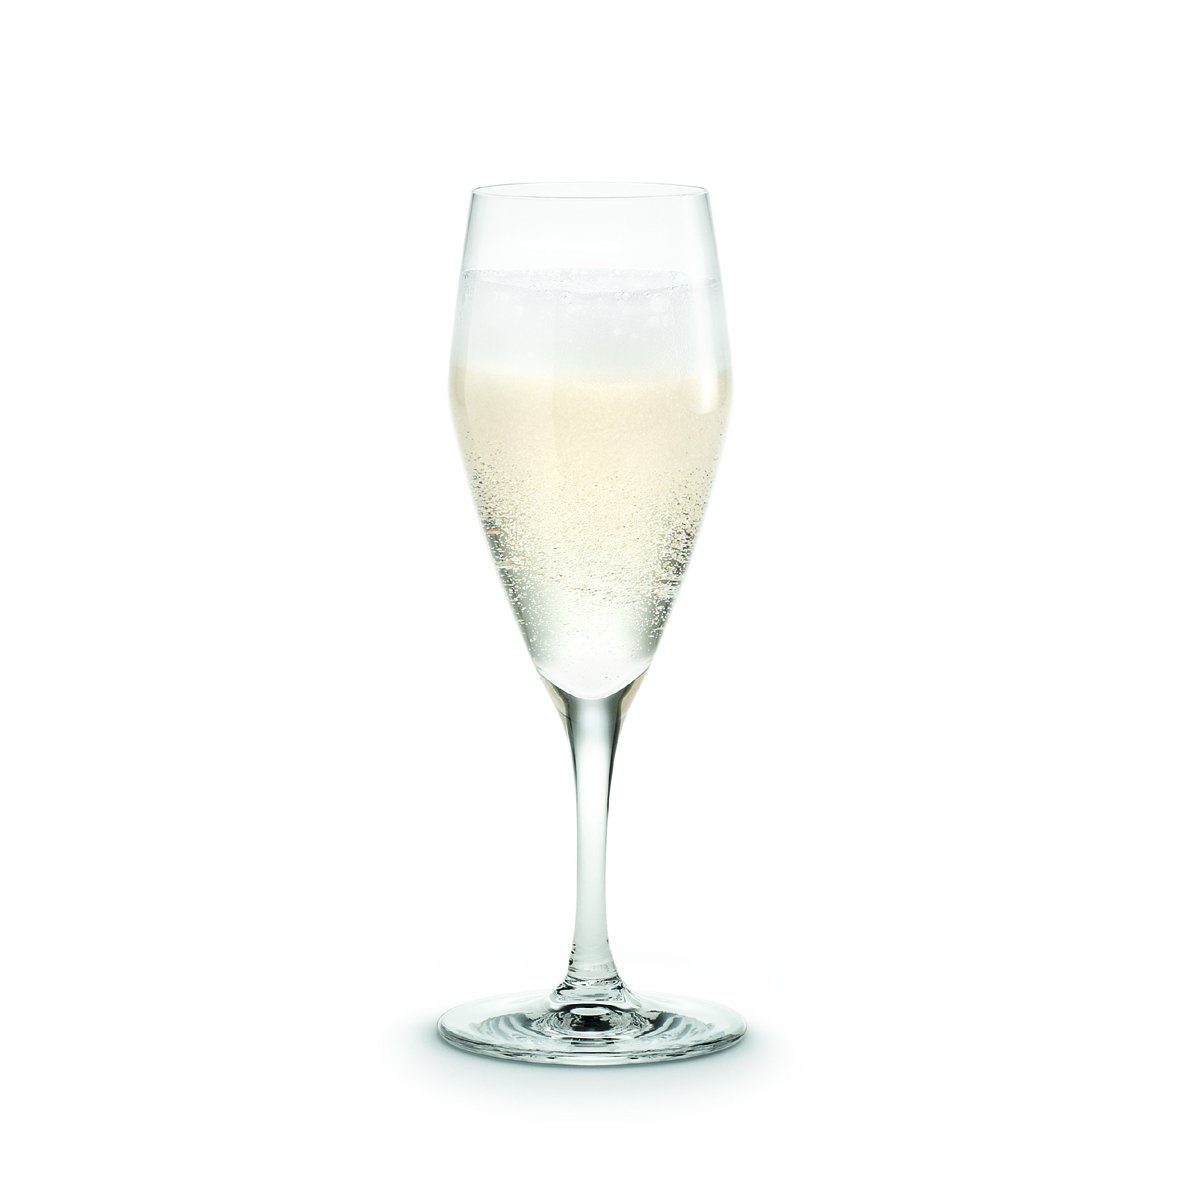 HOLMEGAARD HOLMEGAARD Champagneglas Perfection 12.5 cl